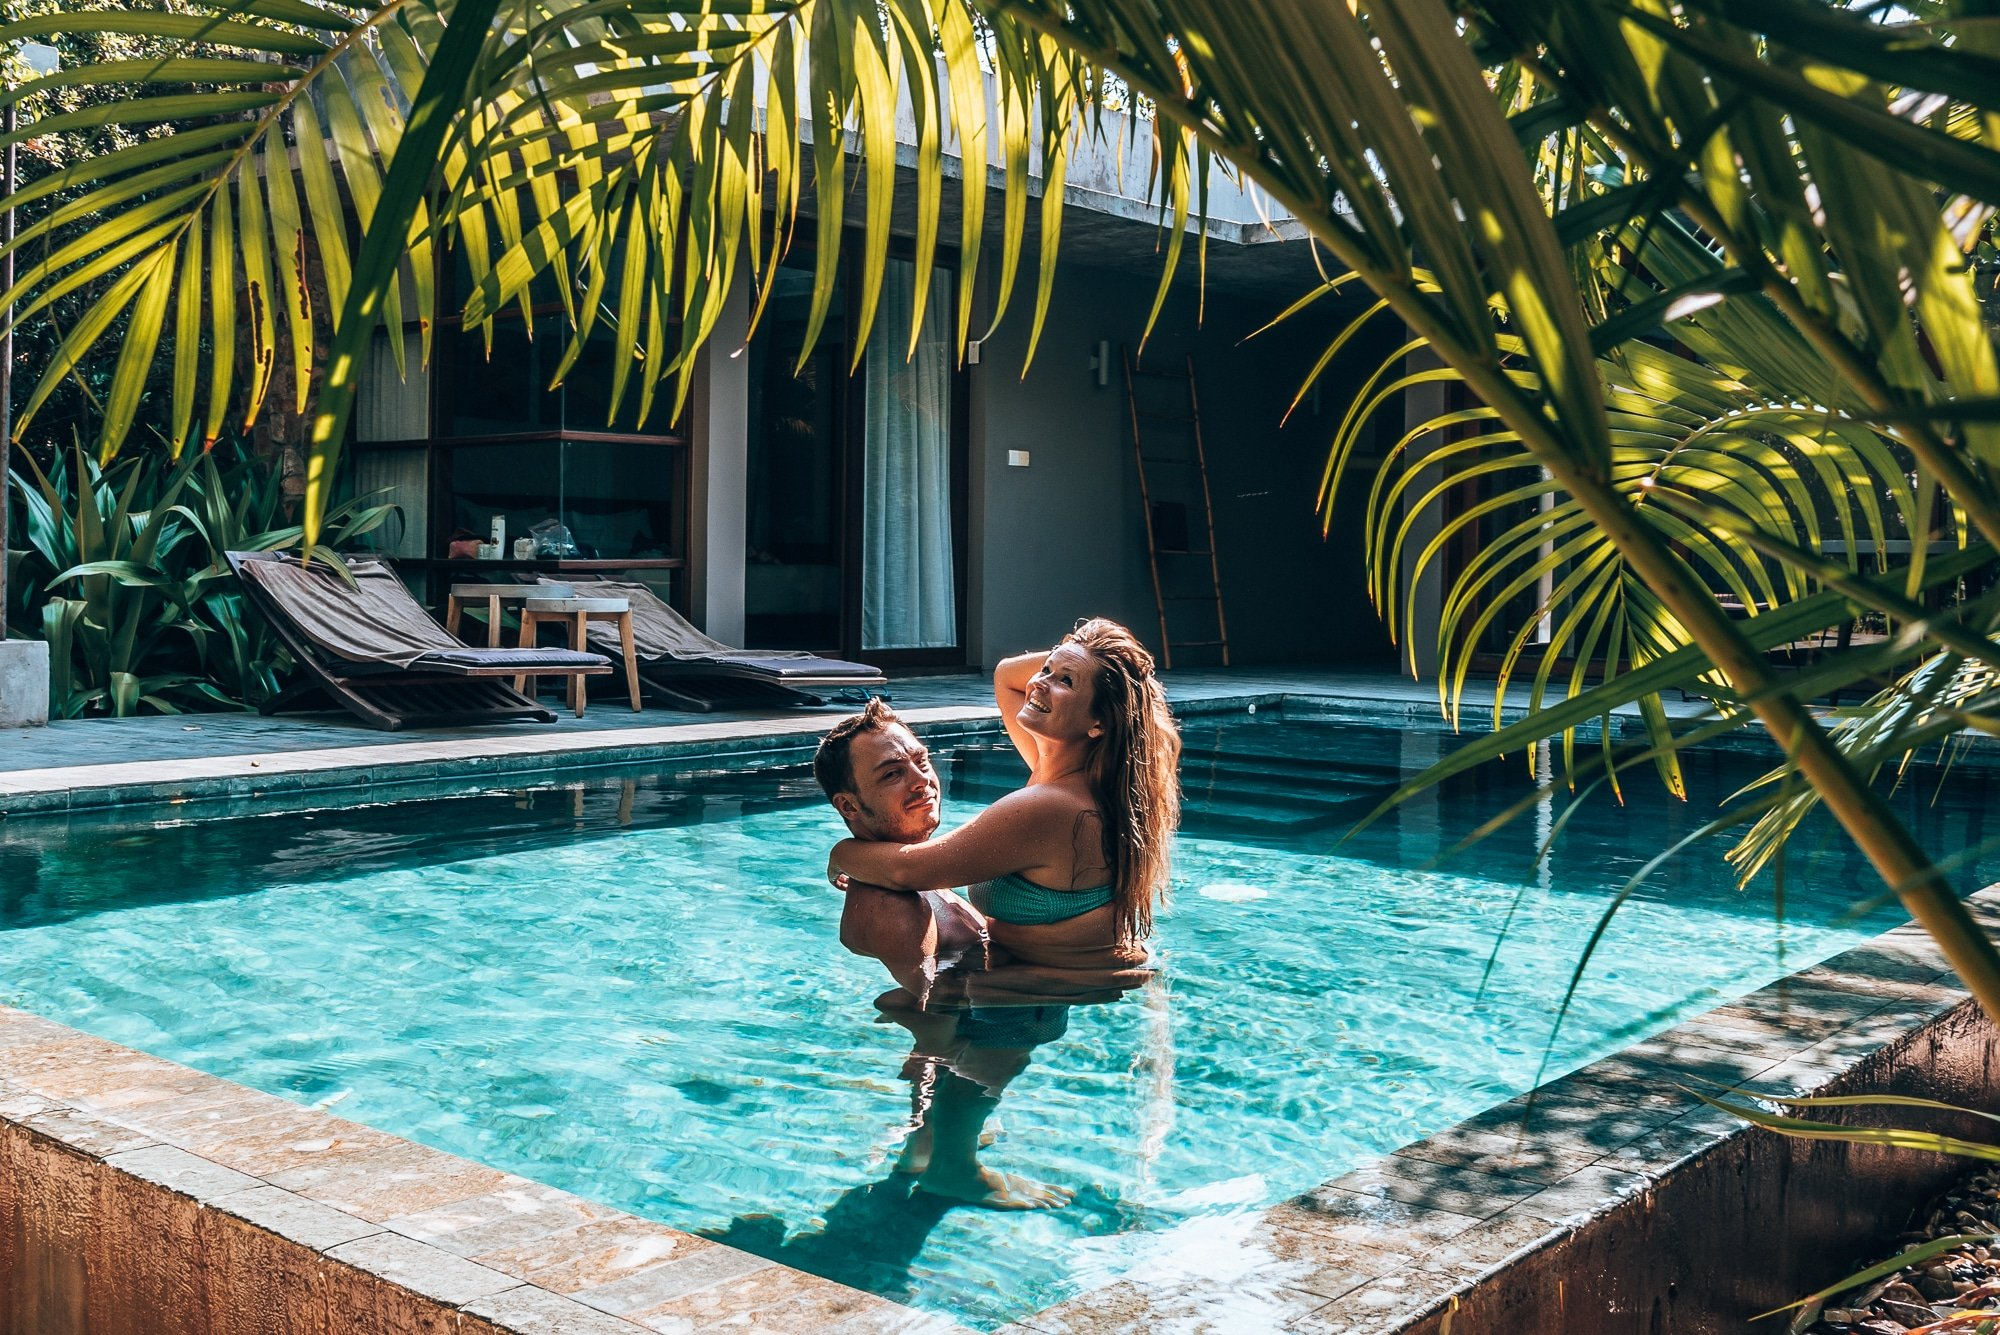 Bram and Manon in a swimming pool at Templation hotel in Siem Reap, Cambodia